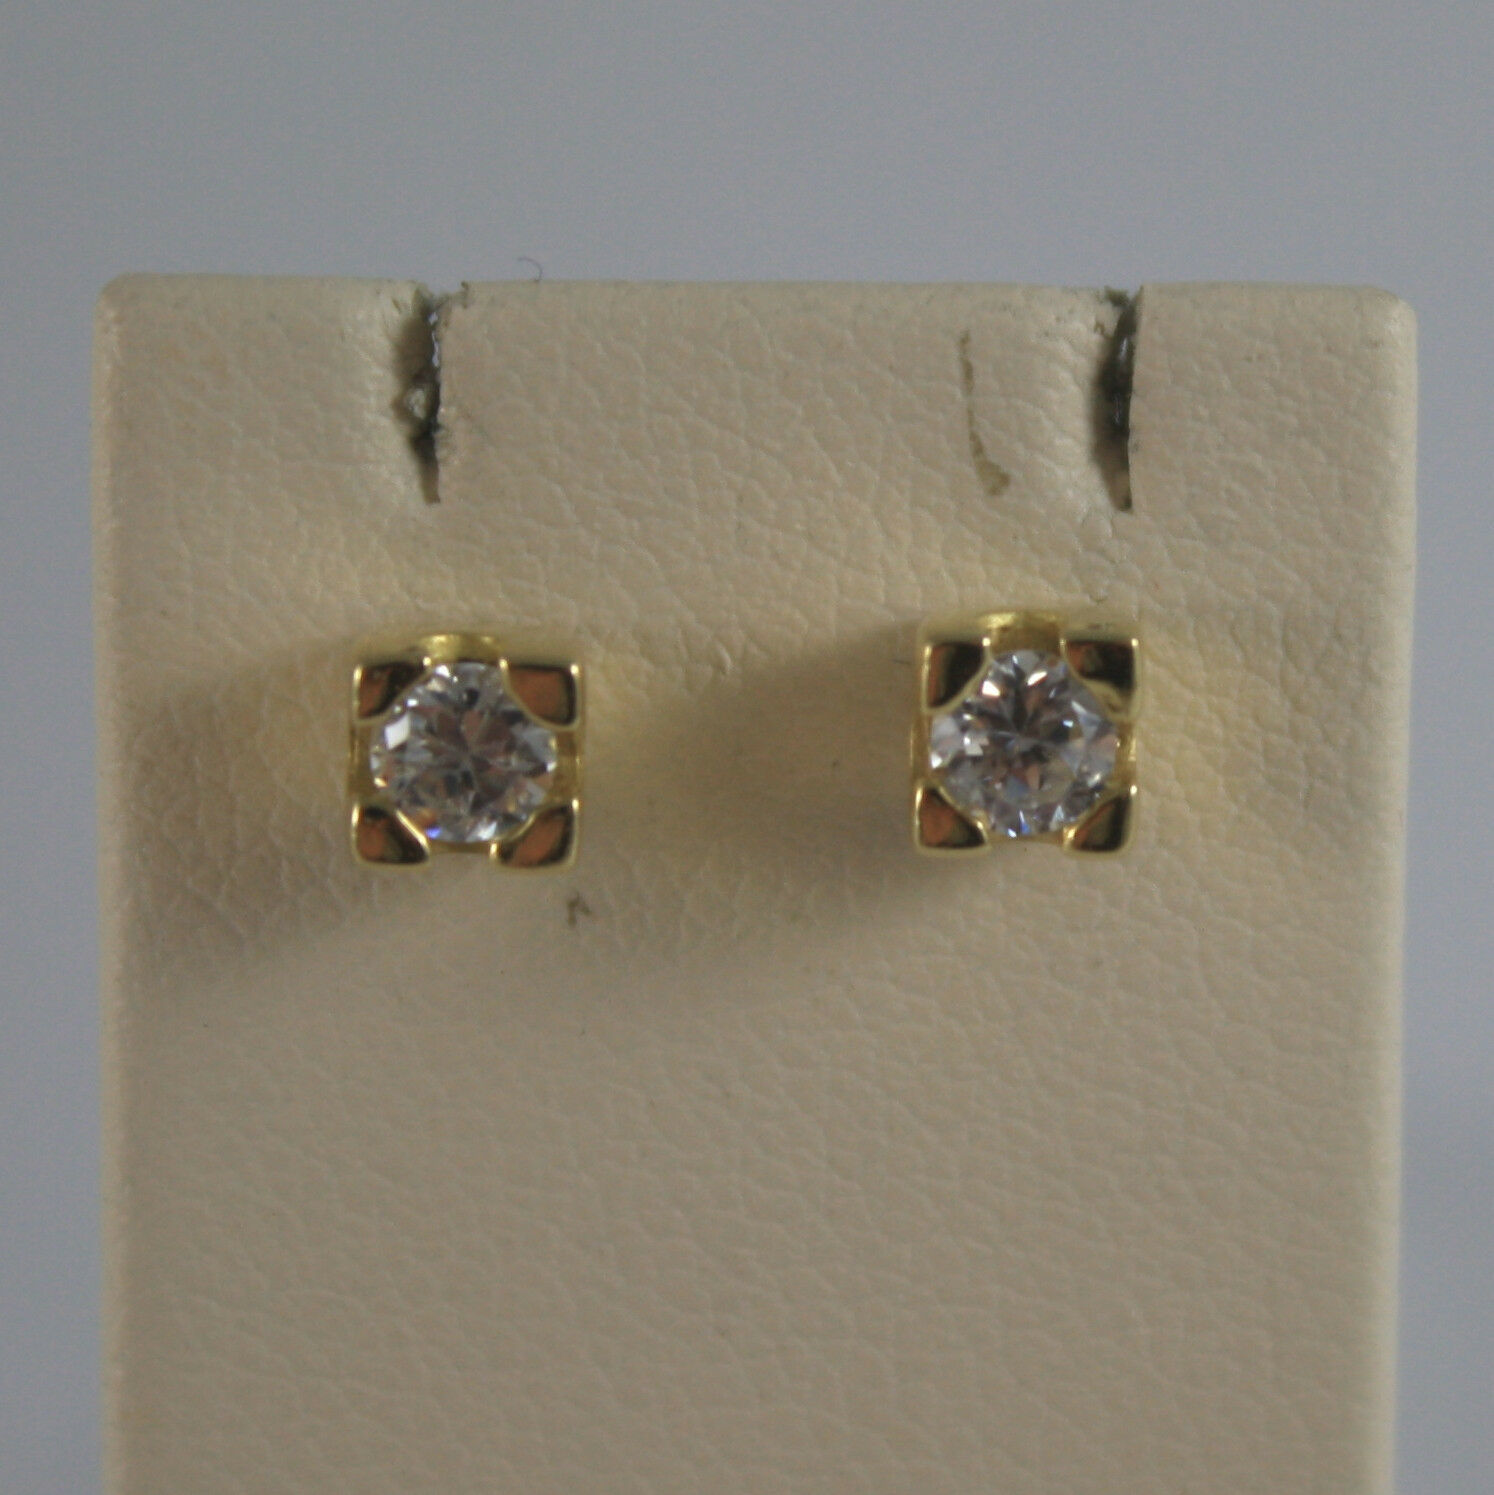 SOLID 18K YELLOW GOLD EARRINGS, ZIRCONIA, WIDTH 0.16 INCHES, MADE IN ITALY